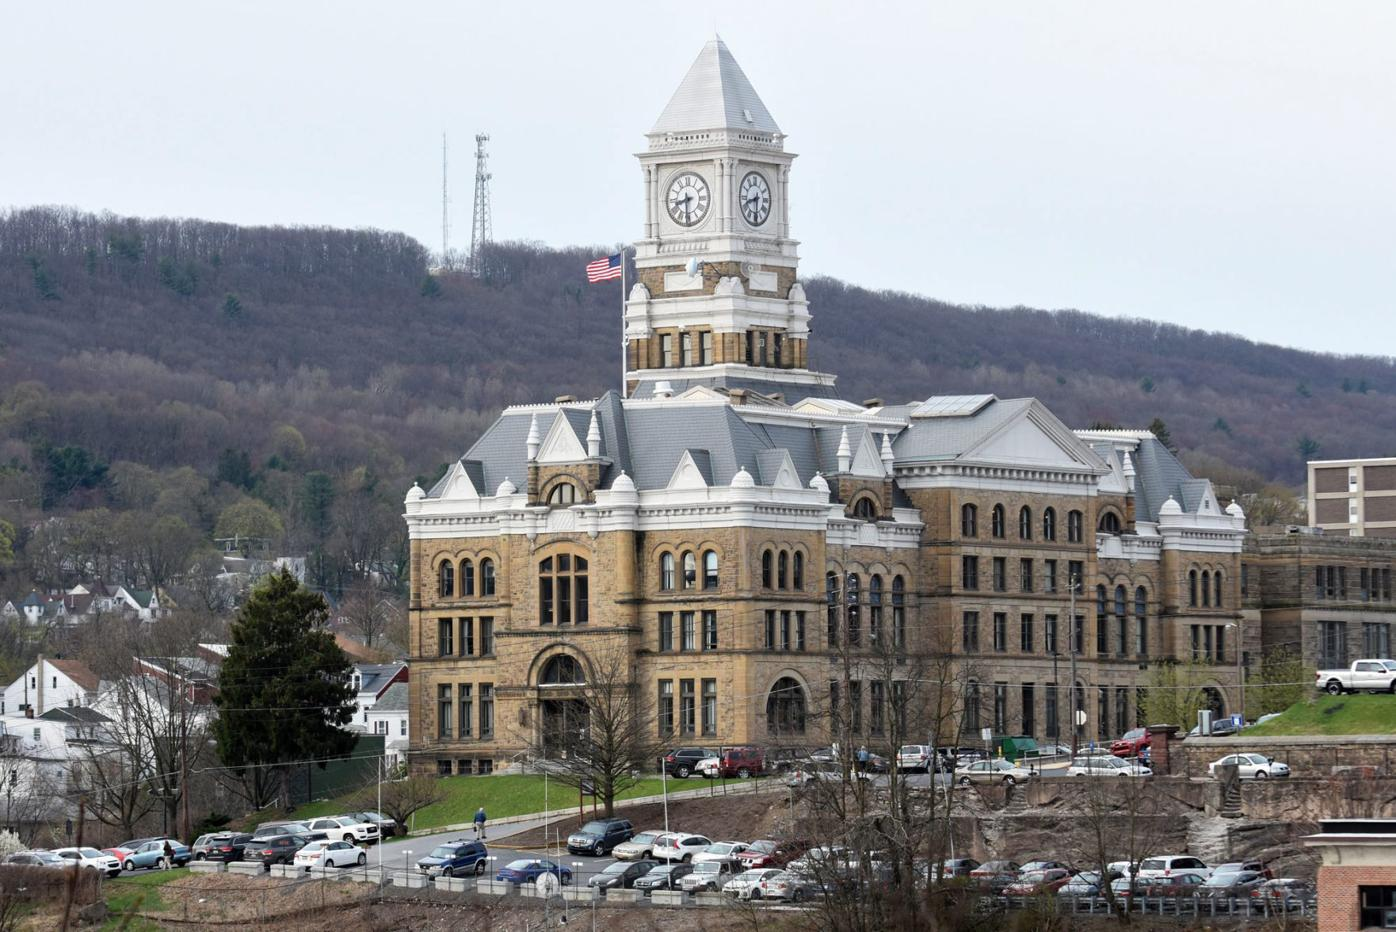 Schuylkill County Courthouse